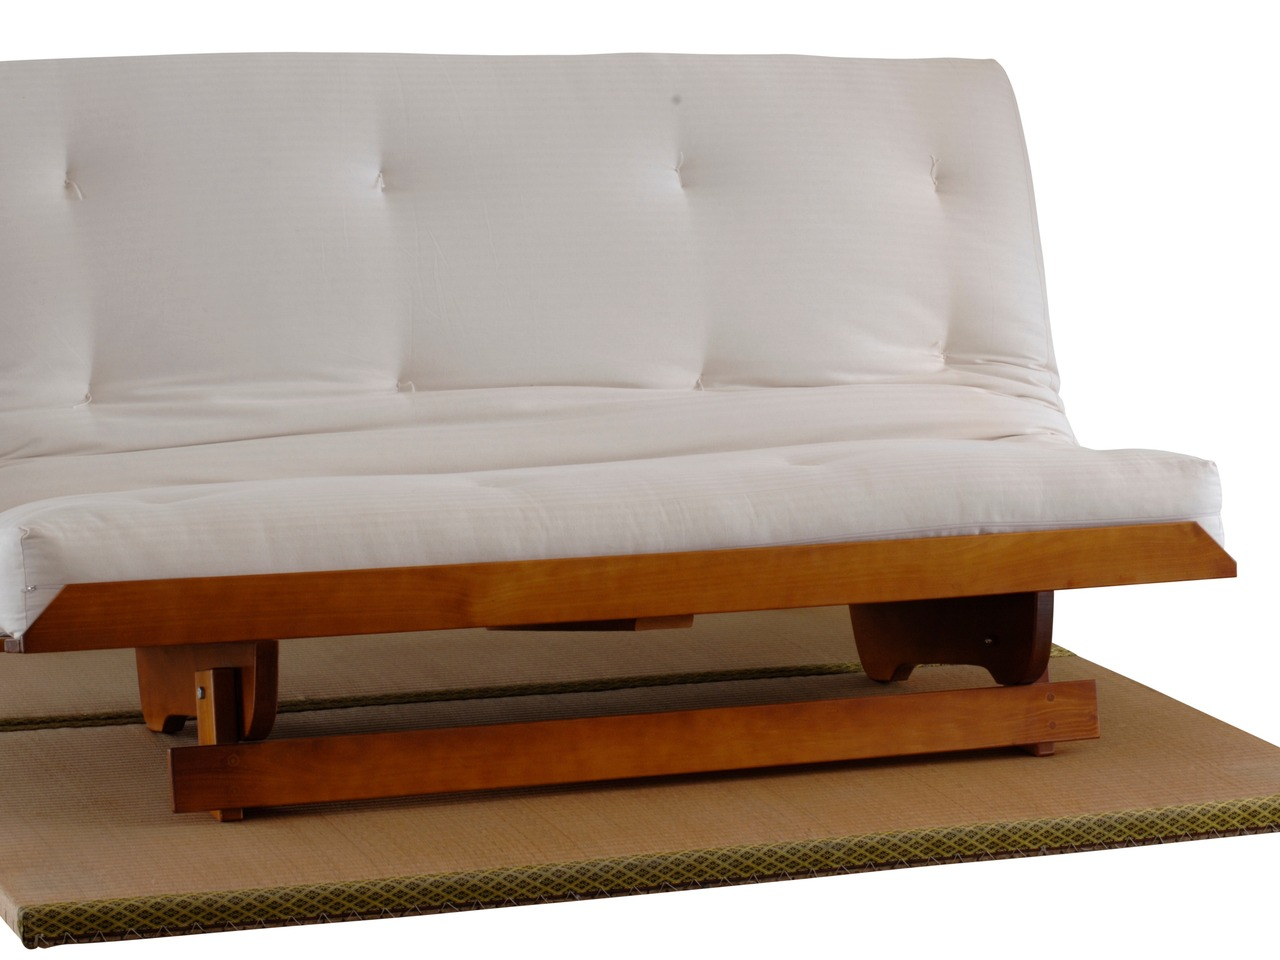 2 fold sofa bed by zen beds and sofas by dan walker for Zen sofa bed